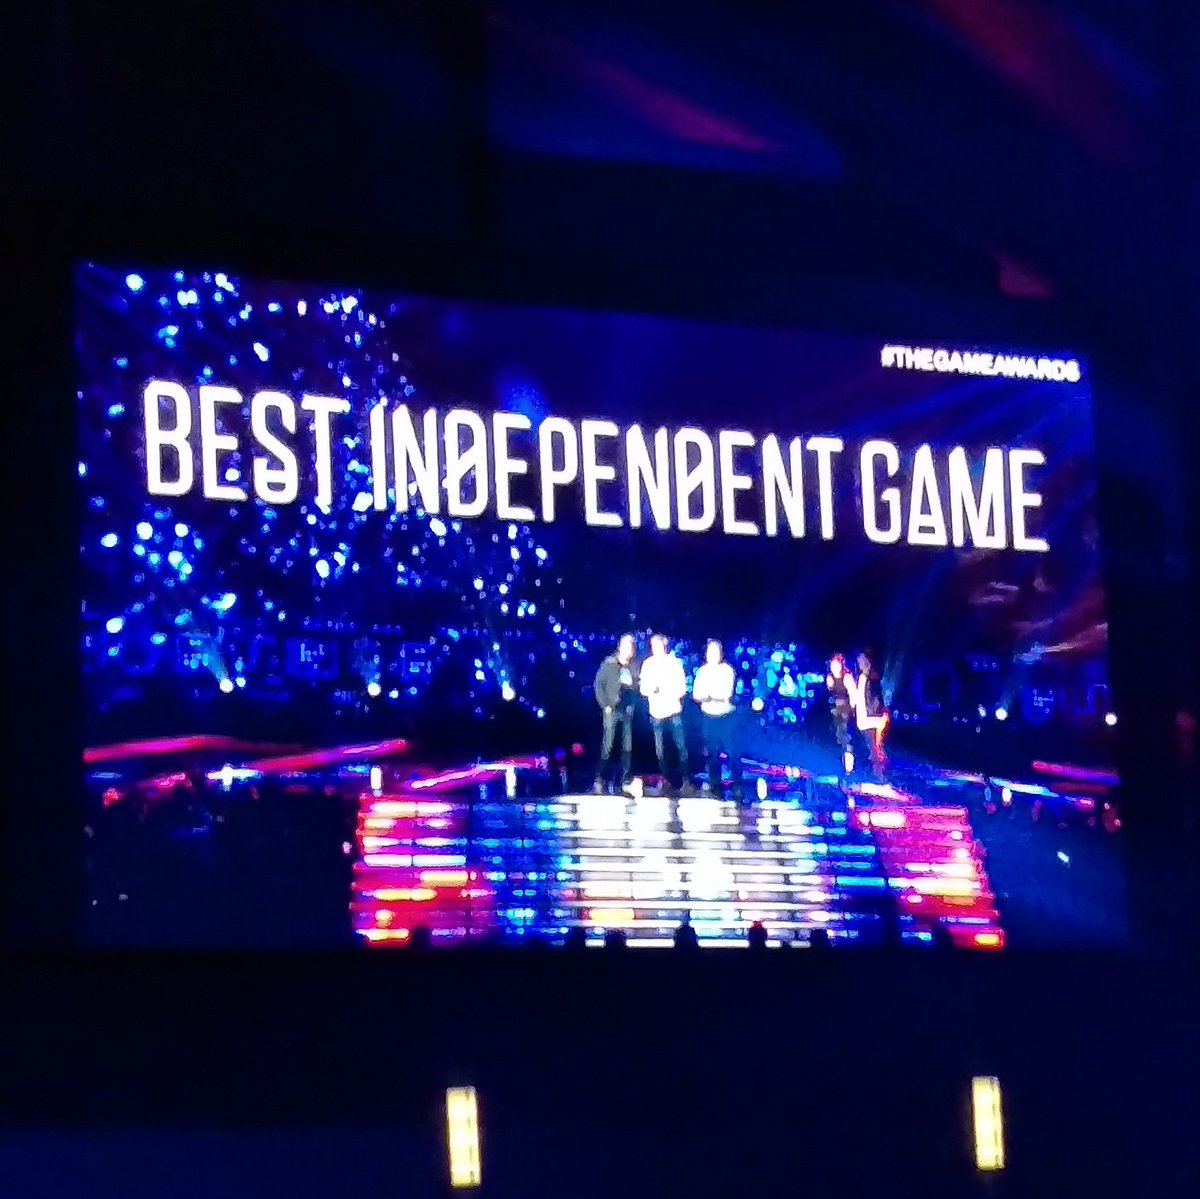 Rocket League won Best Independent Game.   #TheGameAwards #AMDGreenRoom #AMDRTP https://t.co/hRLP1rQkYL